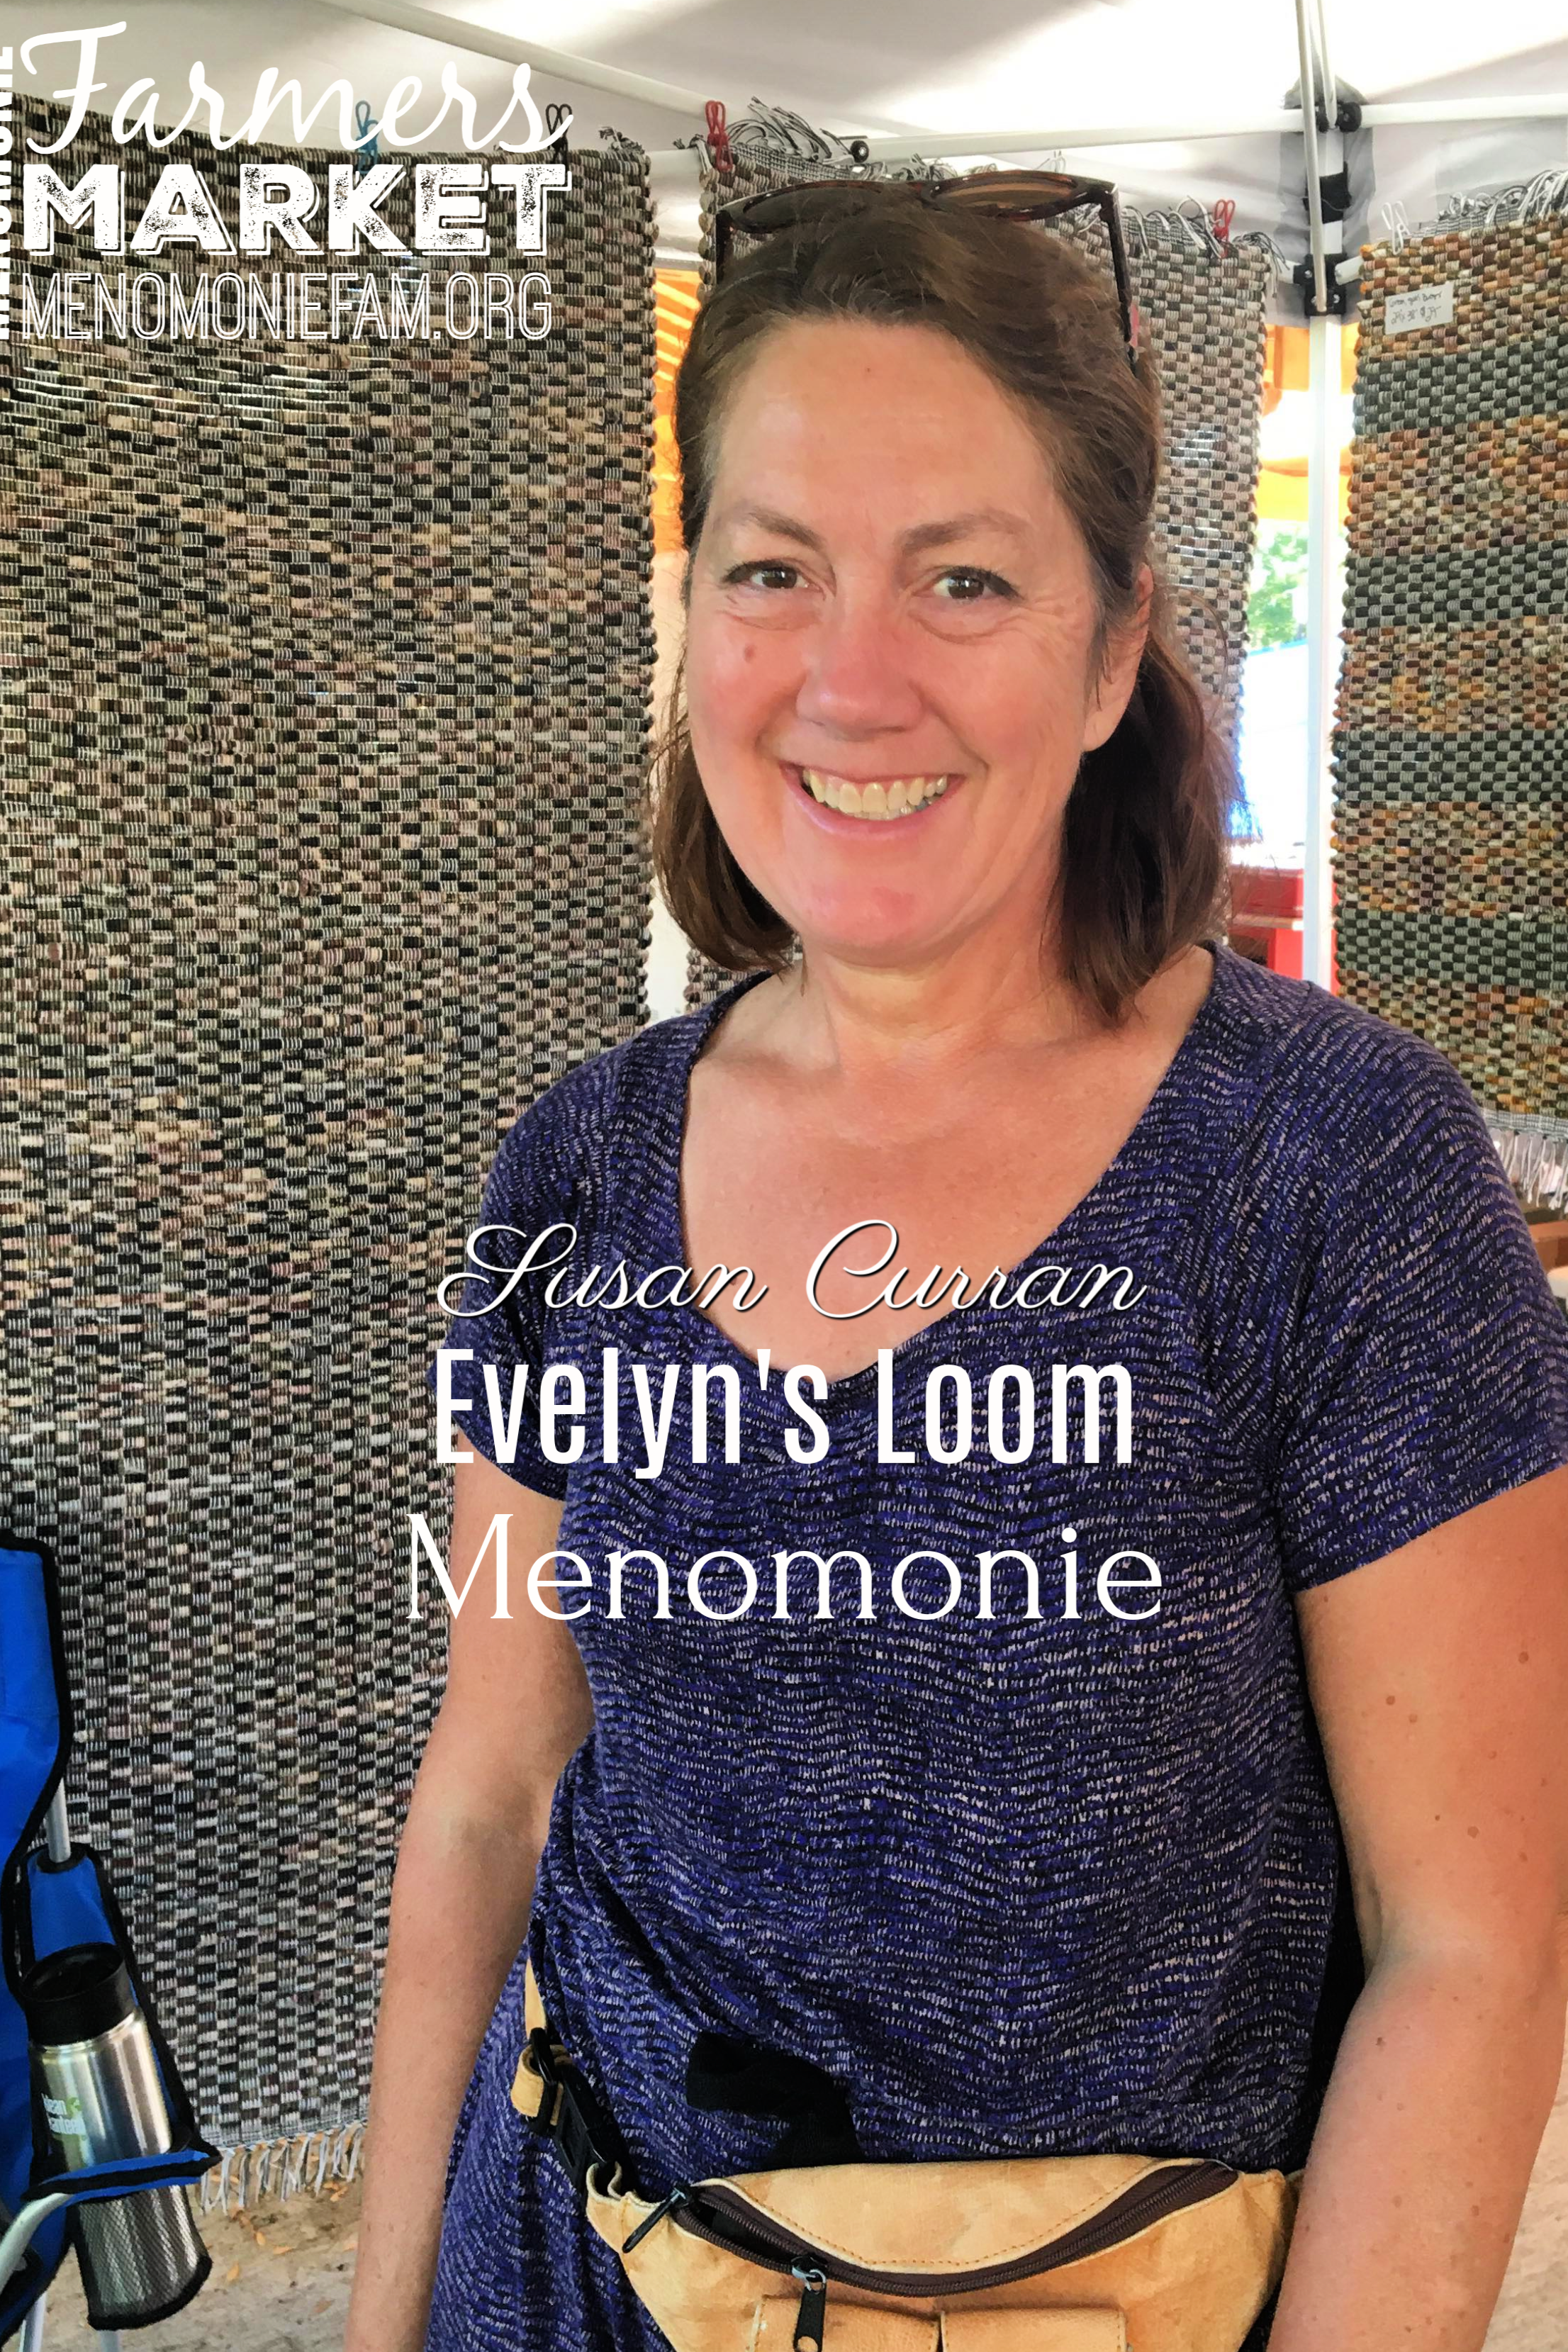 Evelyn's Loom